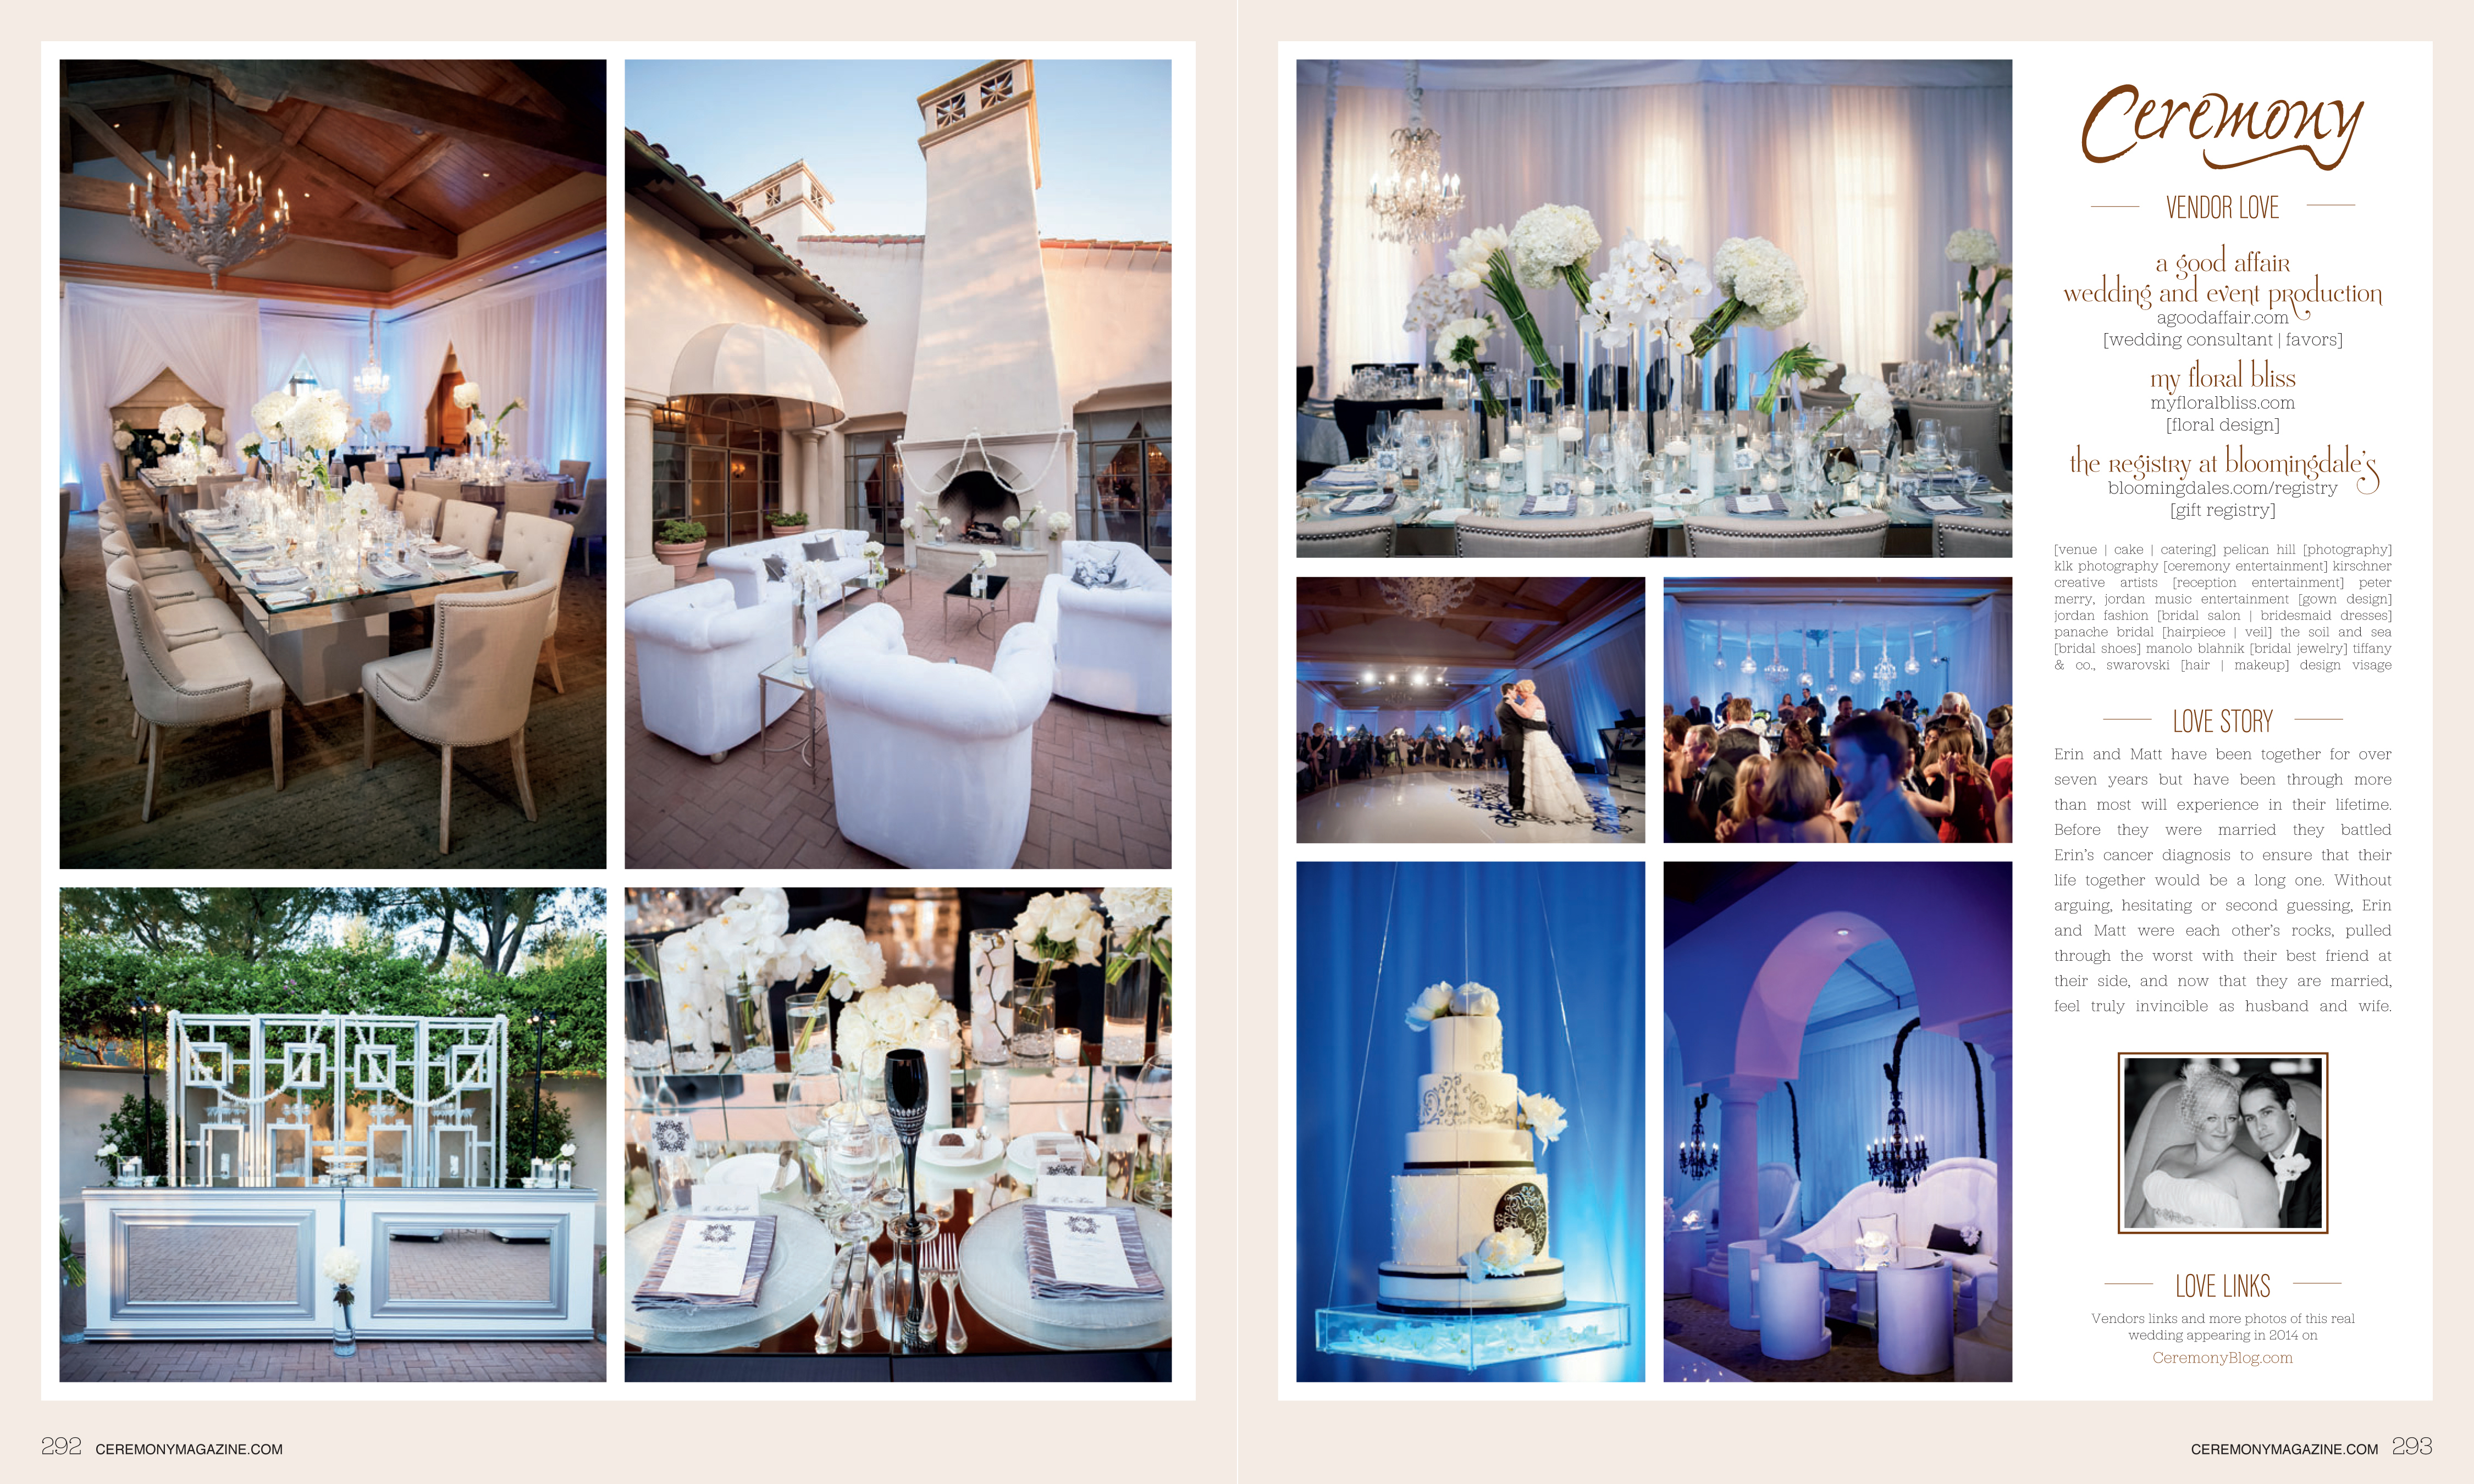 Ceremony Magazine Orange County, A Good Affair Wedding & Event Production, Pelican Hill Wedding feature